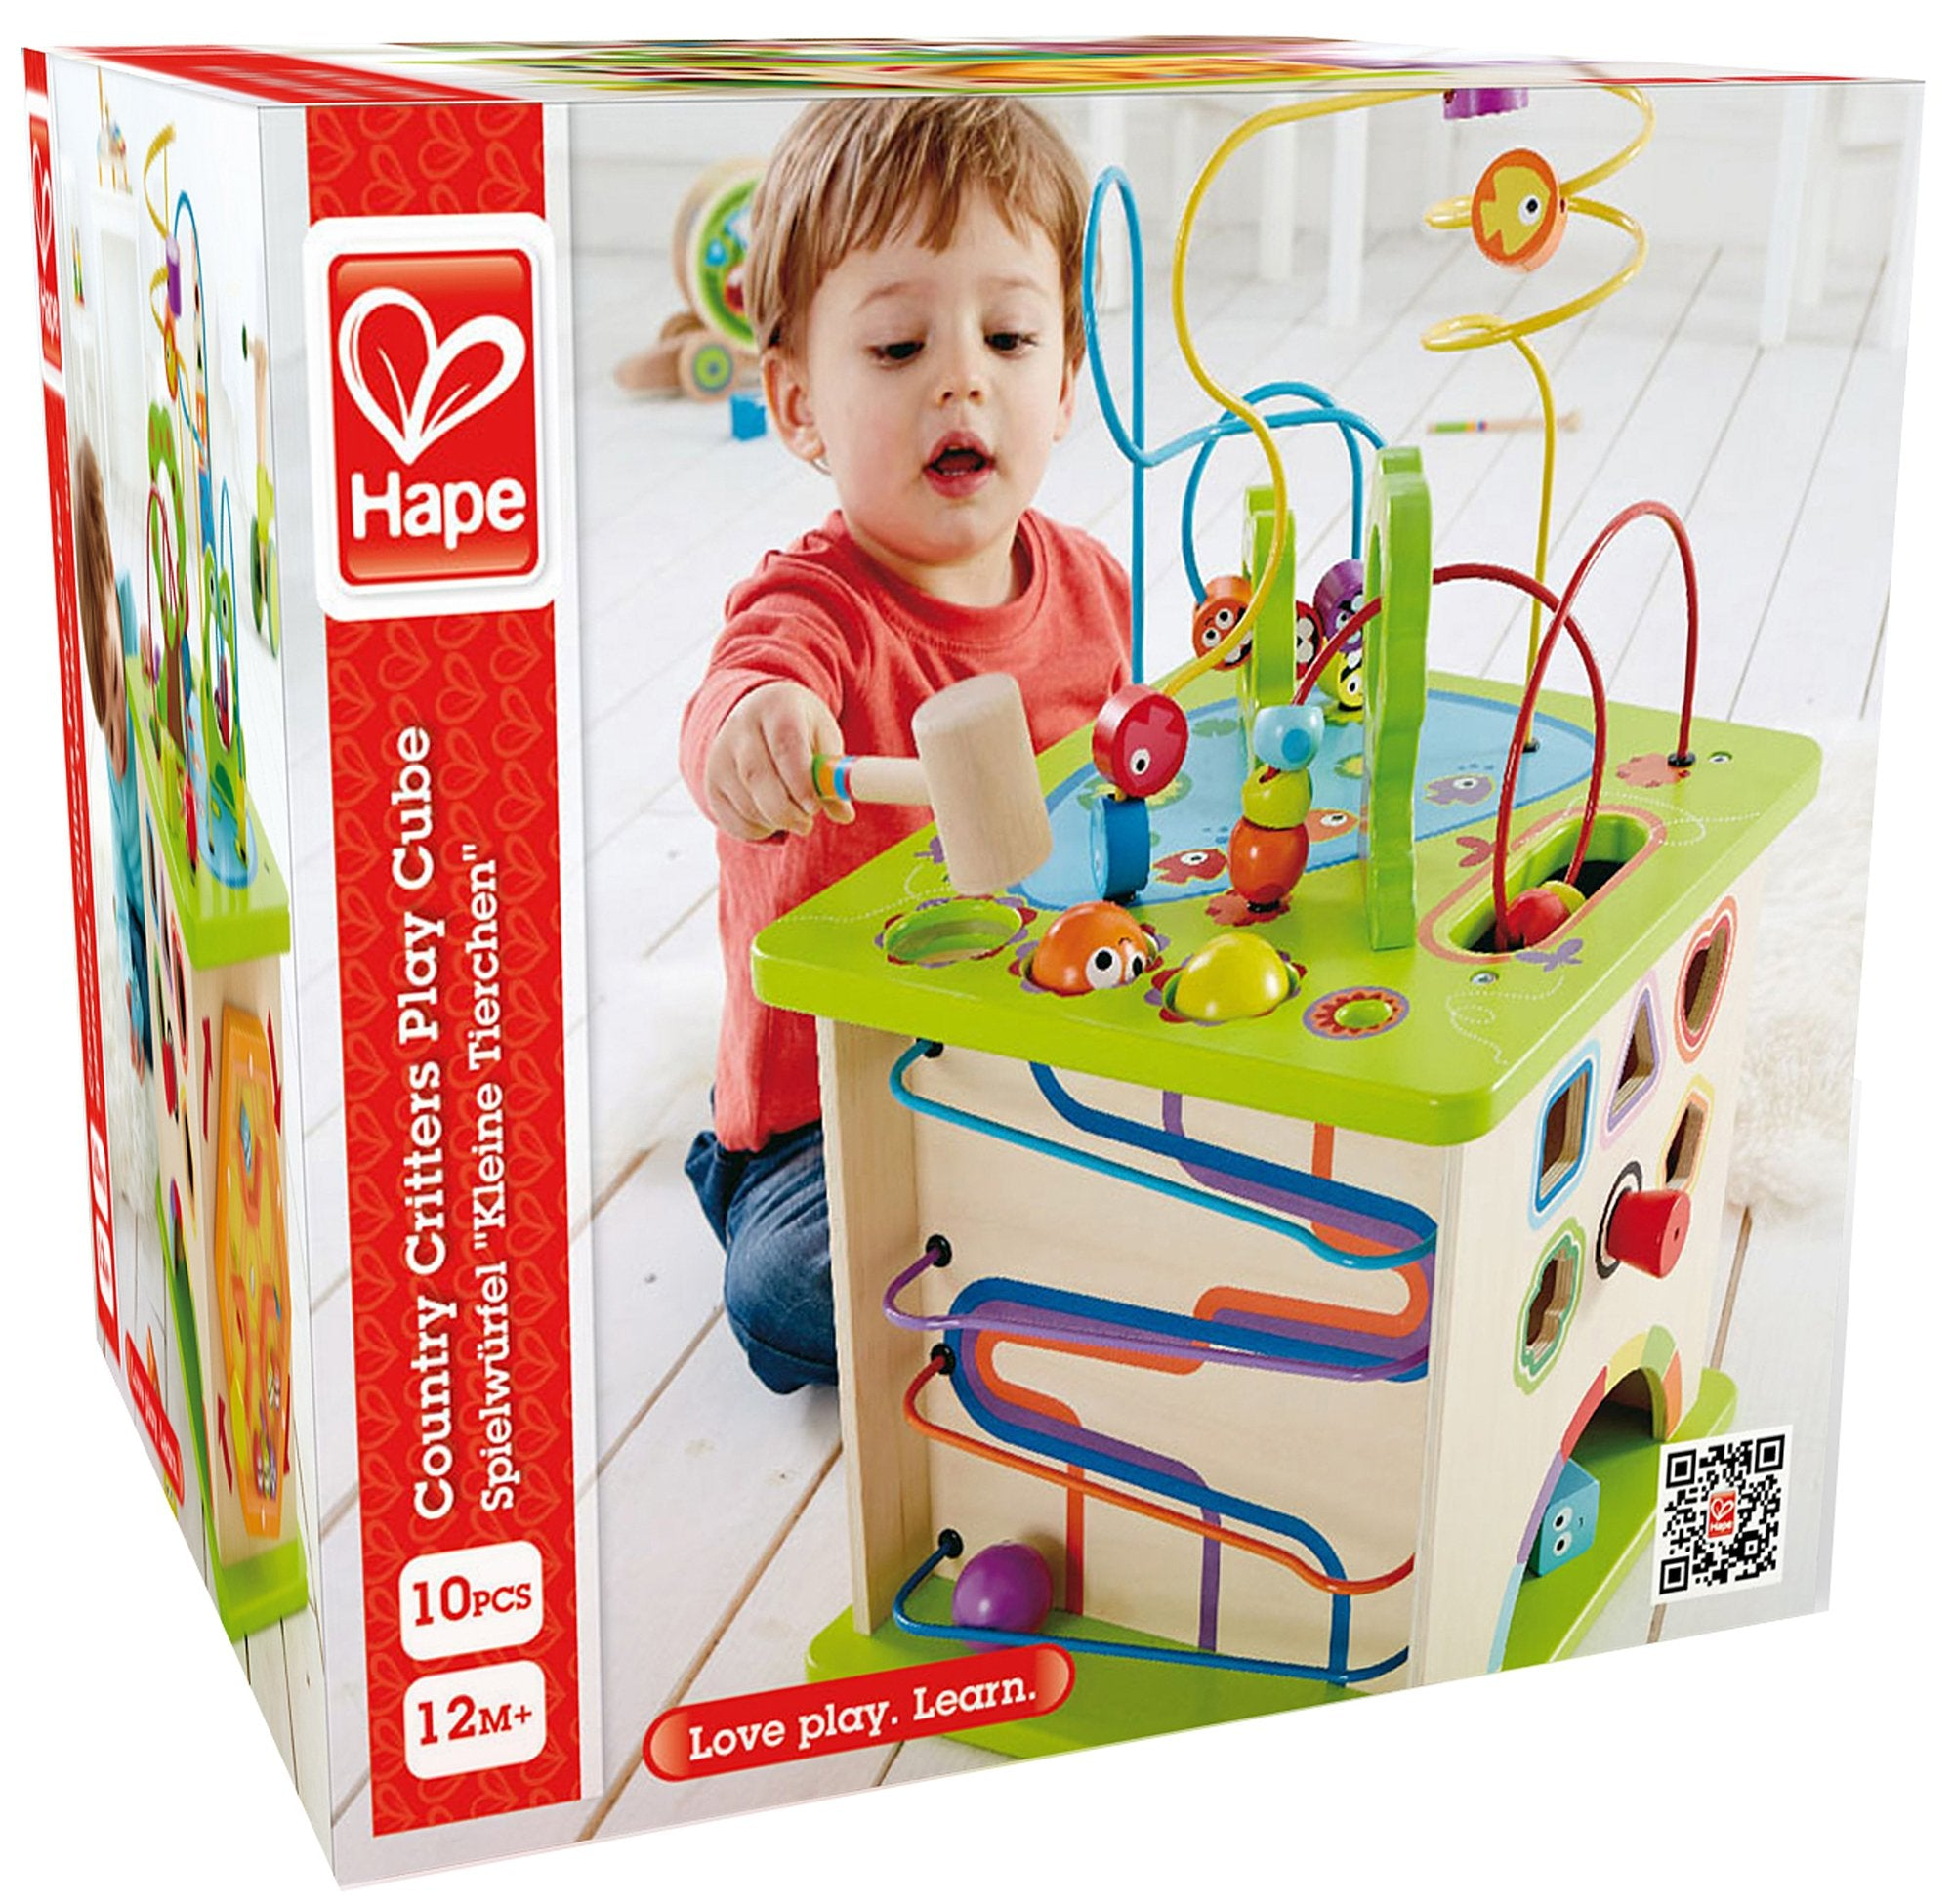 Country Critters Wooden Activity Play Cube by Hape | Wooden Learning Puzzle Toy for Toddlers, 5-Sided Activity Center with Animal Friends, Shapes, Mazes, Wooden Balls, Shape Sorter Blocks and More